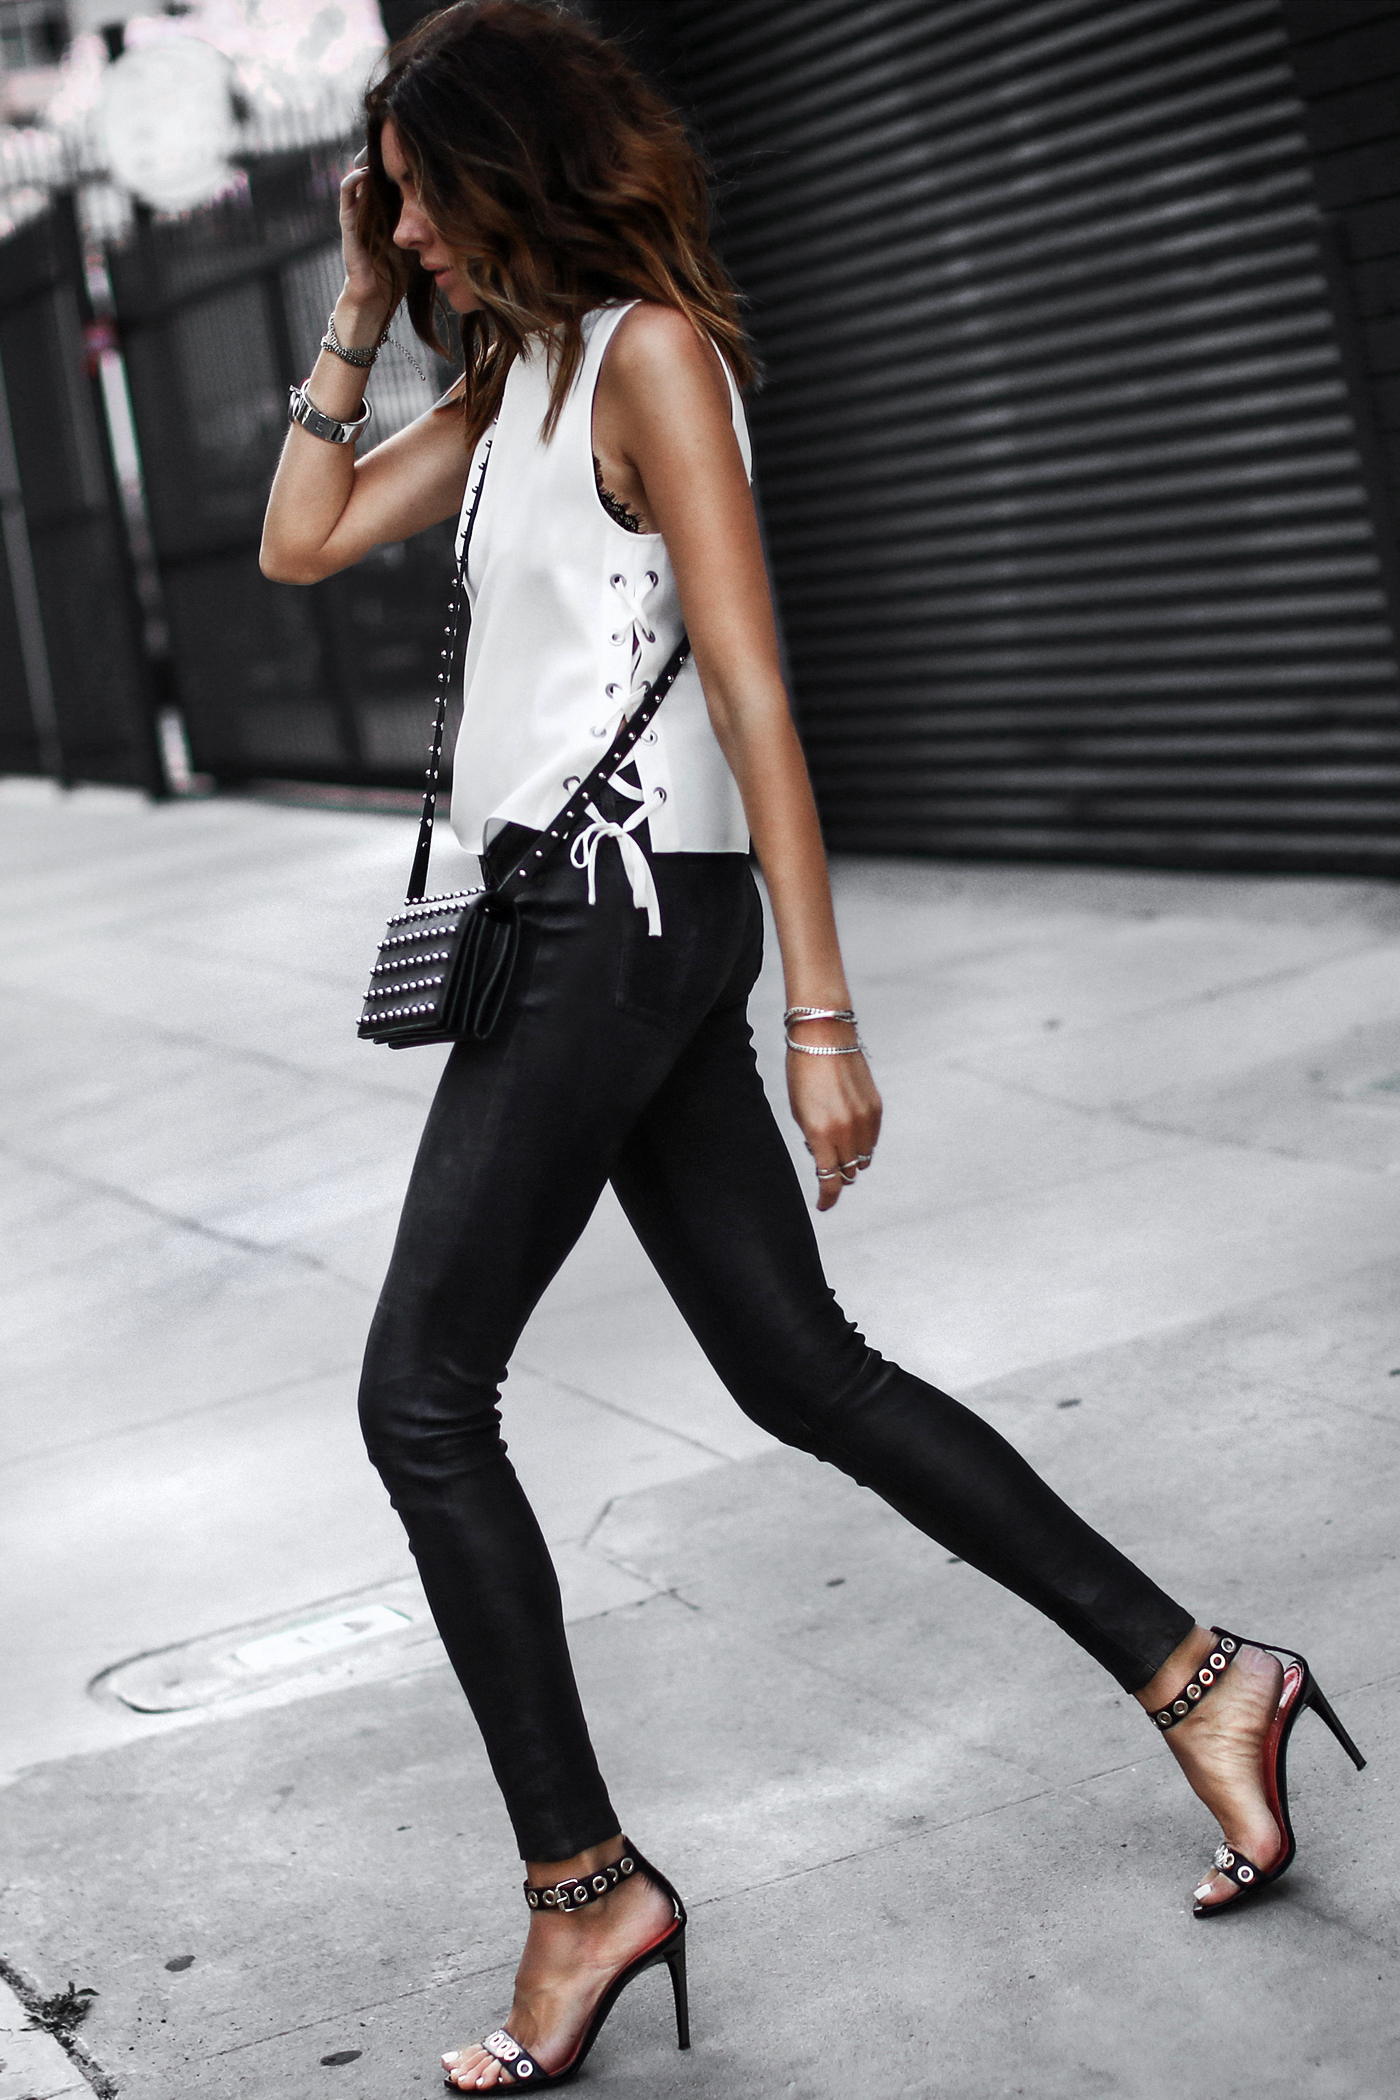 lace-up tank top, crossbody studded bag, black leather pants